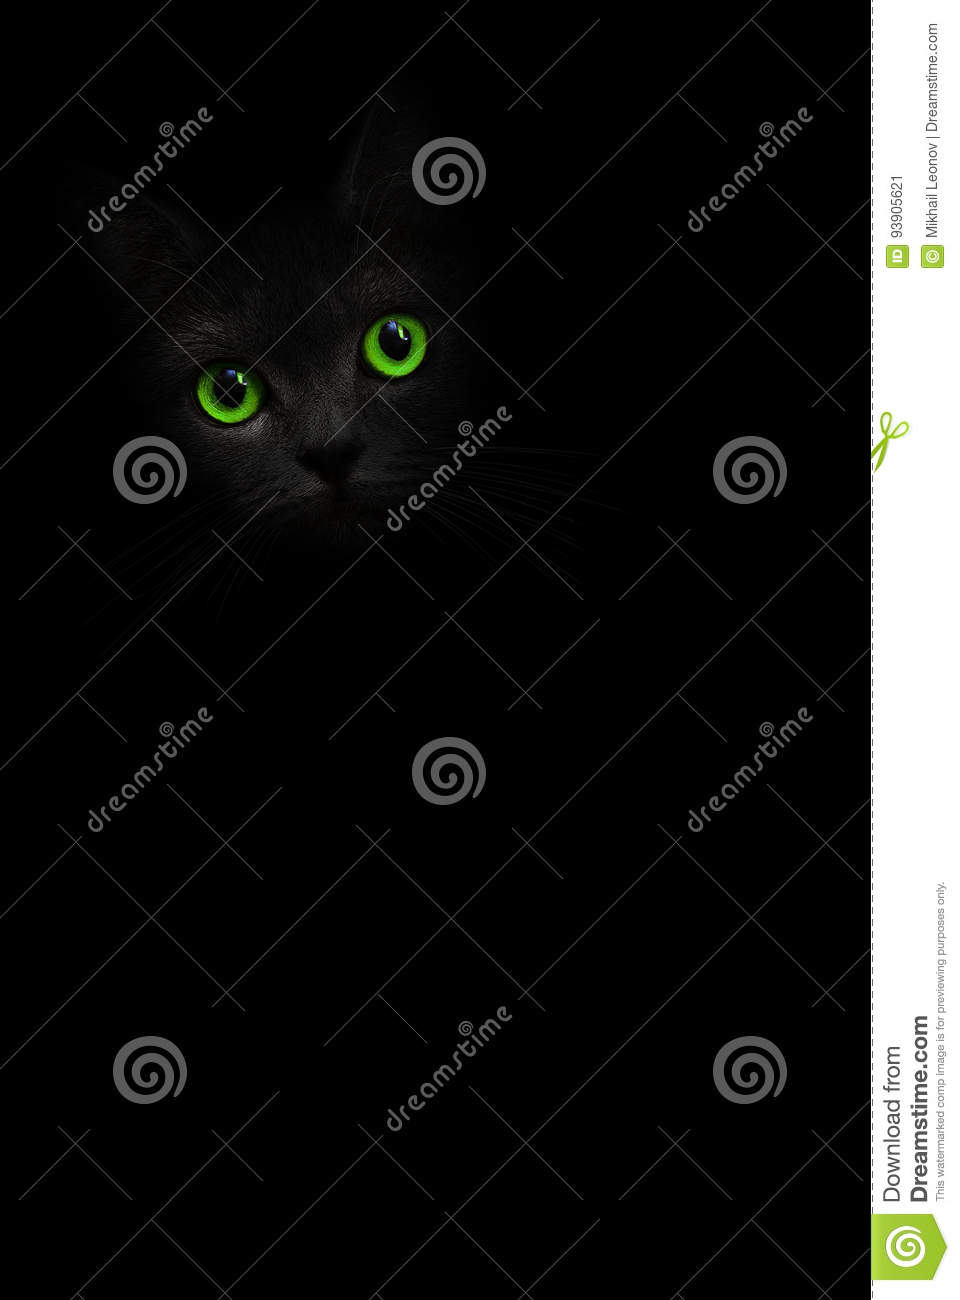 Cute black cat with green eyes is looking out of the shadow on background. Cat pussycat. Green eyes cat. Art shadow kitty. Cat in